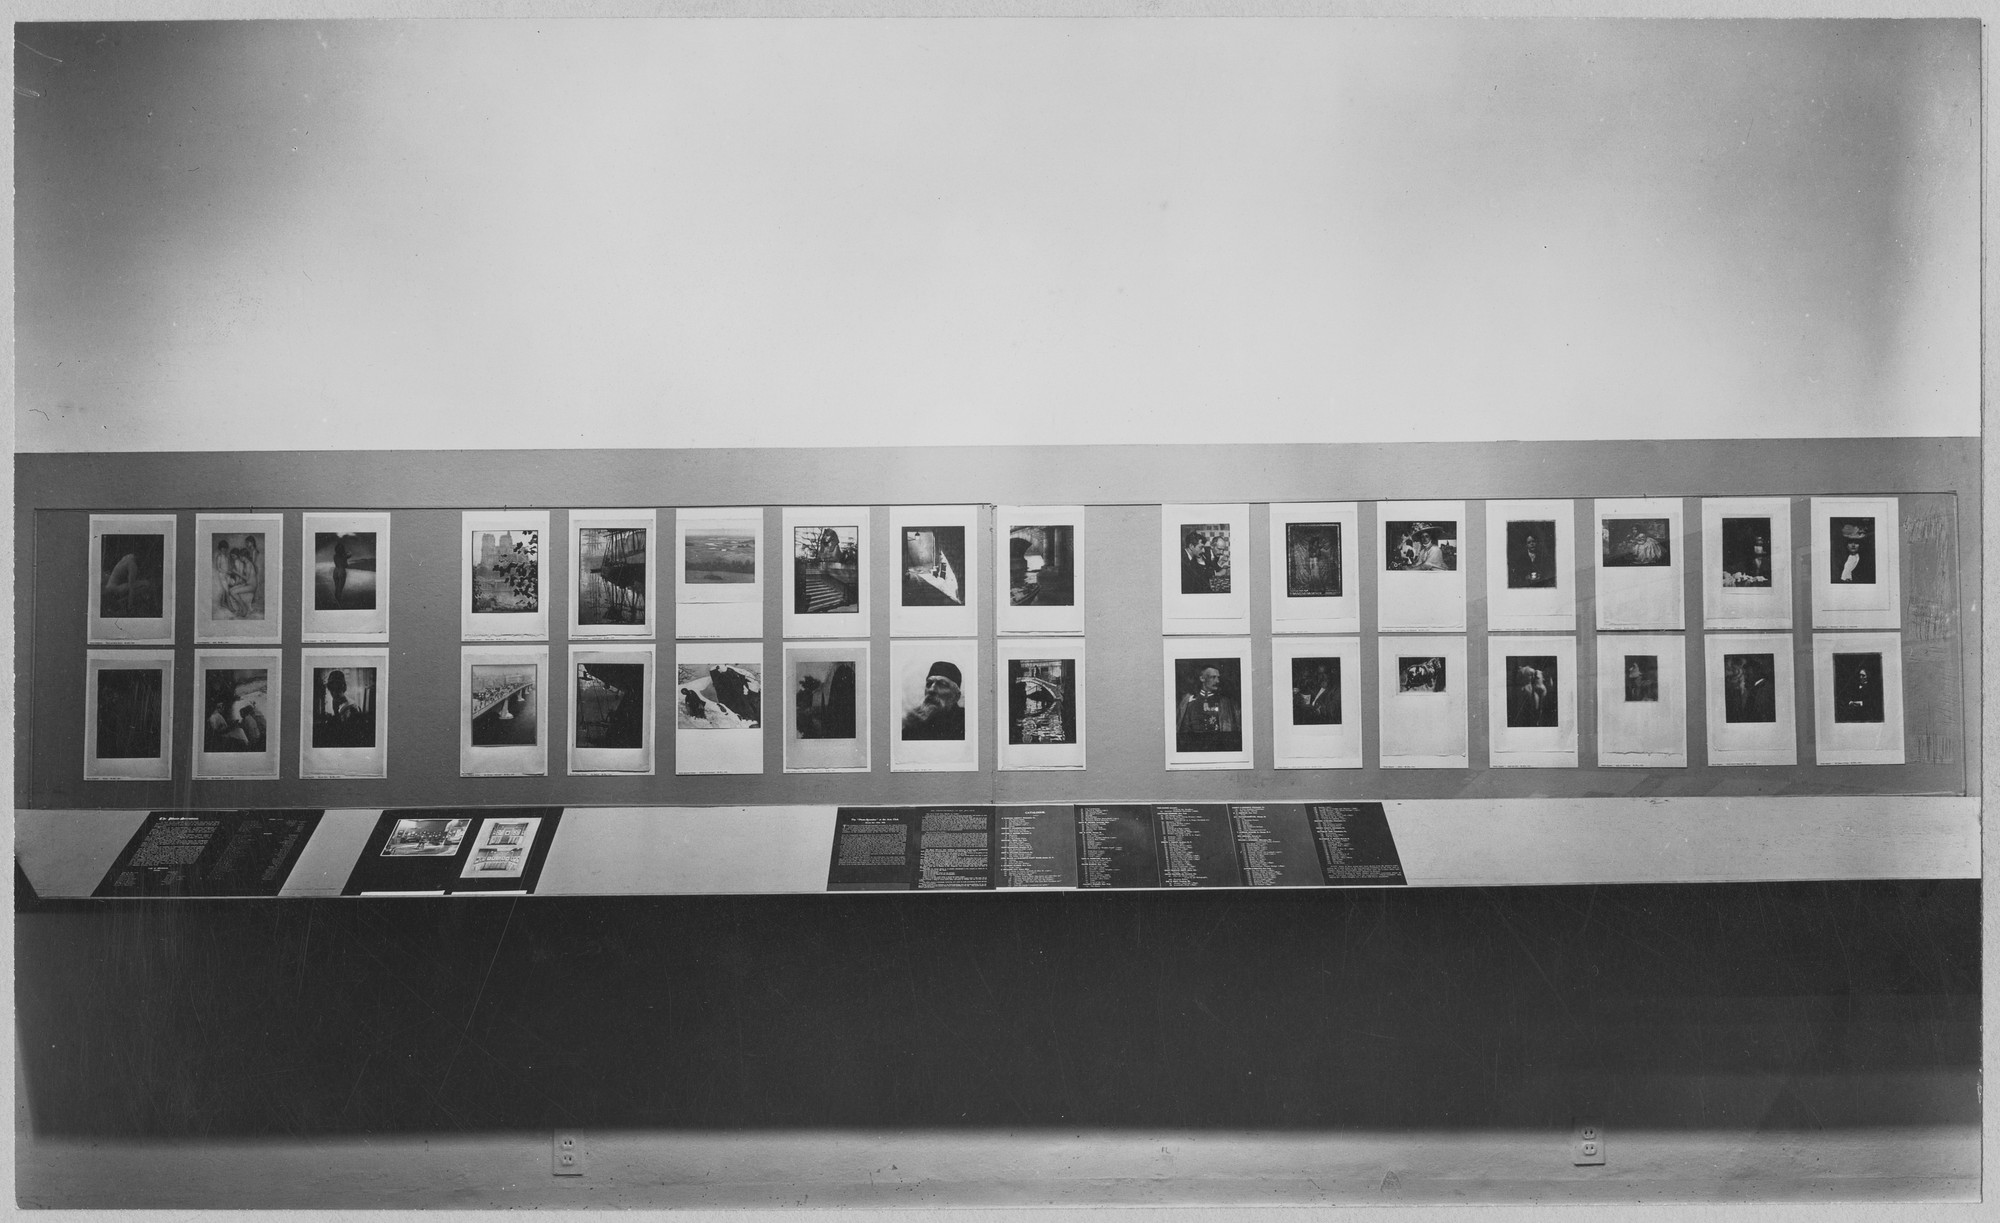 "Installation view of the exhibition, ""Photo-Secession (American Photography 1902-1910)."" September 29, 1948–November 28, 1948. Photographic Archive. The Museum of Modern Art Archives, New York. IN386.1. Photograph by Soichi Sunami."